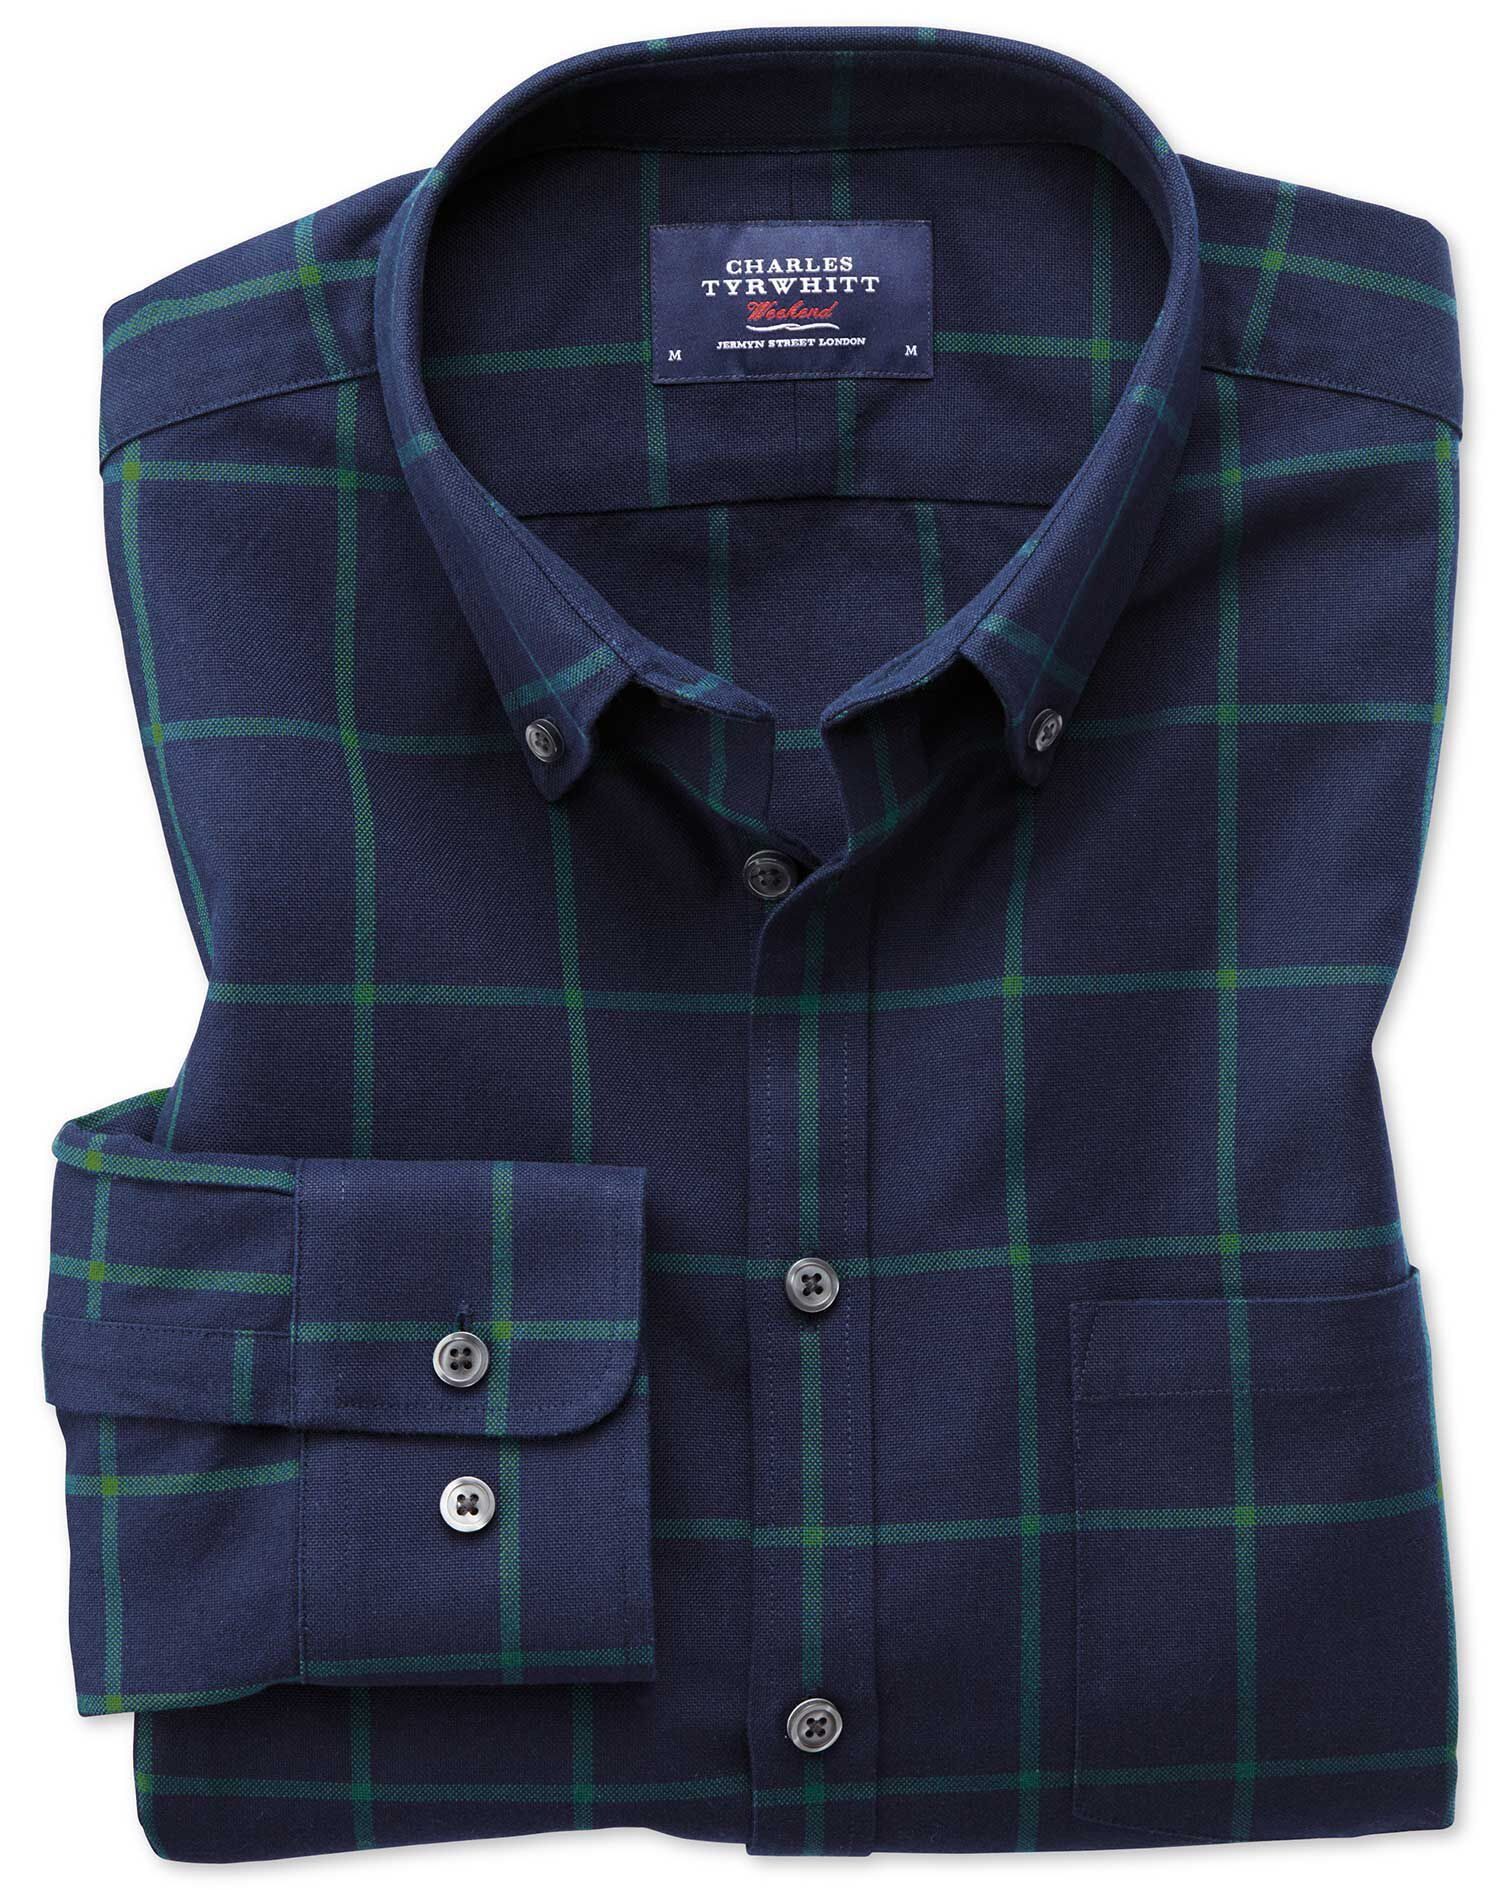 Extra Slim Fit Button-Down Washed Oxford Navy Blue and Green Check Cotton Shirt Single Cuff Size XXL